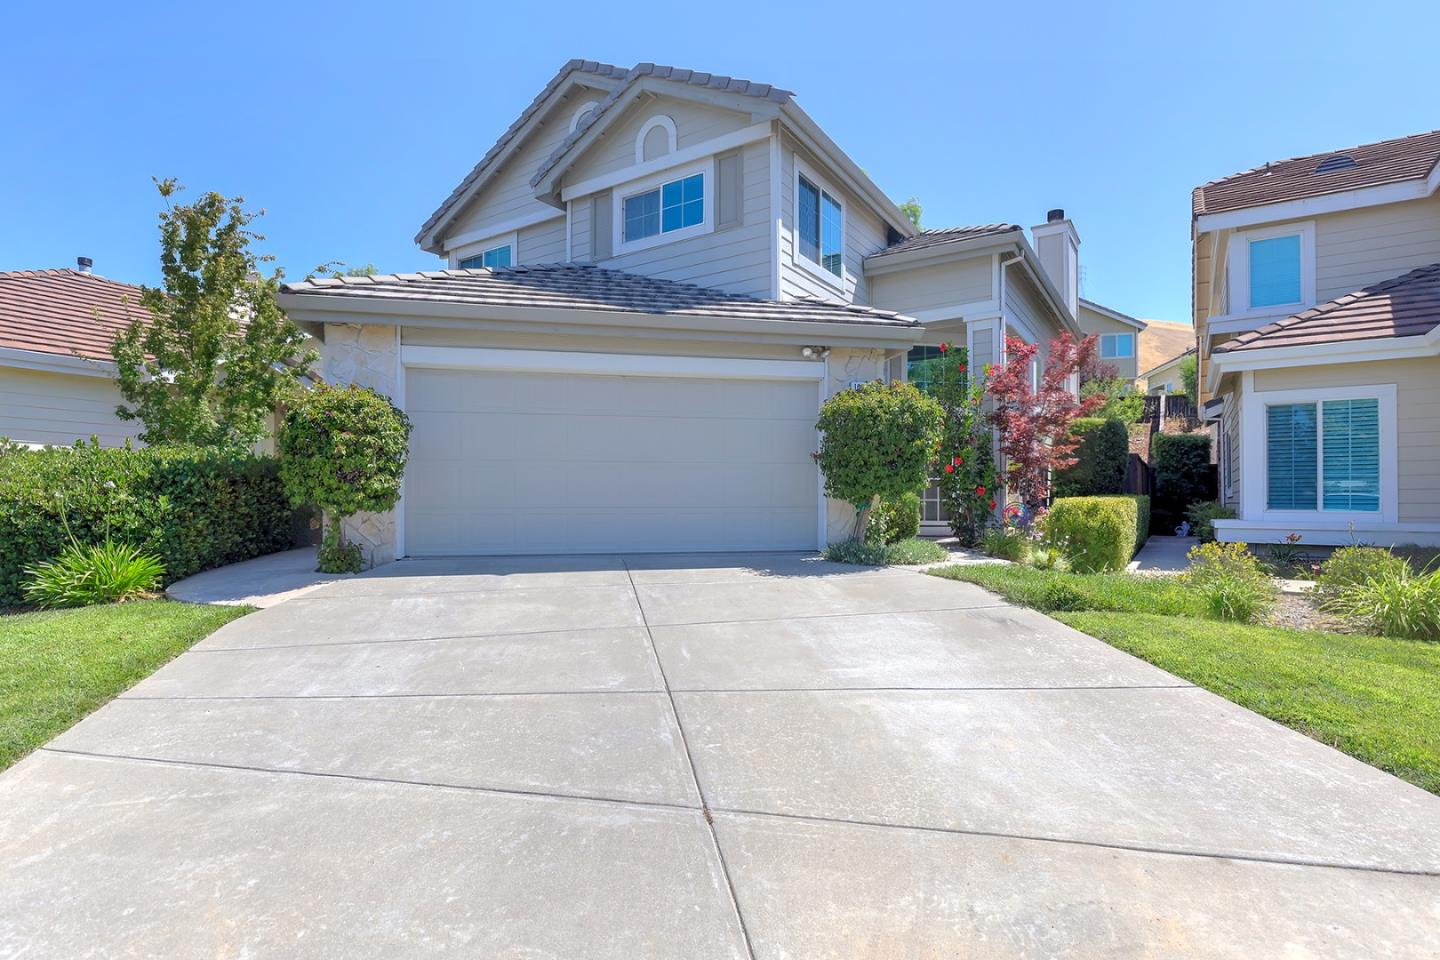 1007 Feather Circle, CLAYTON, CA 94517